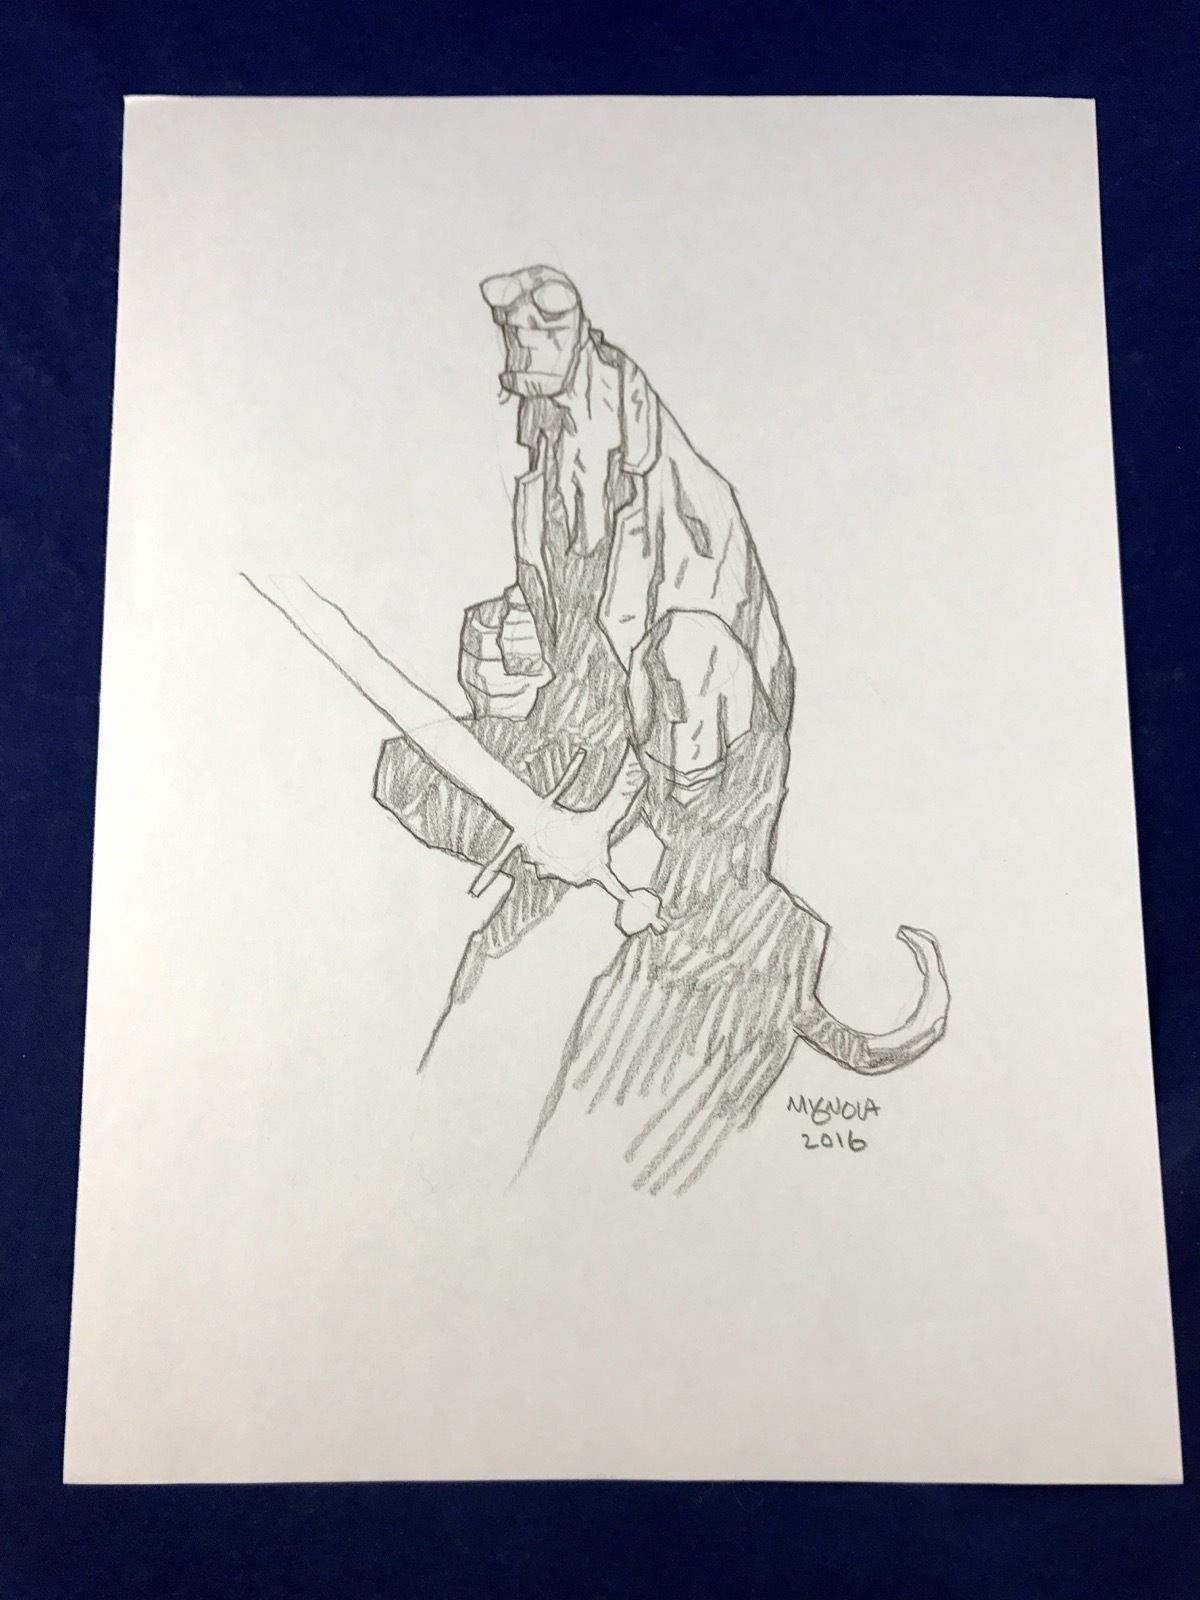 drawing sketch image ebay awesome hellboy full body original art sketch and signed by mike mignola no photograph of drawing sketch image ebay